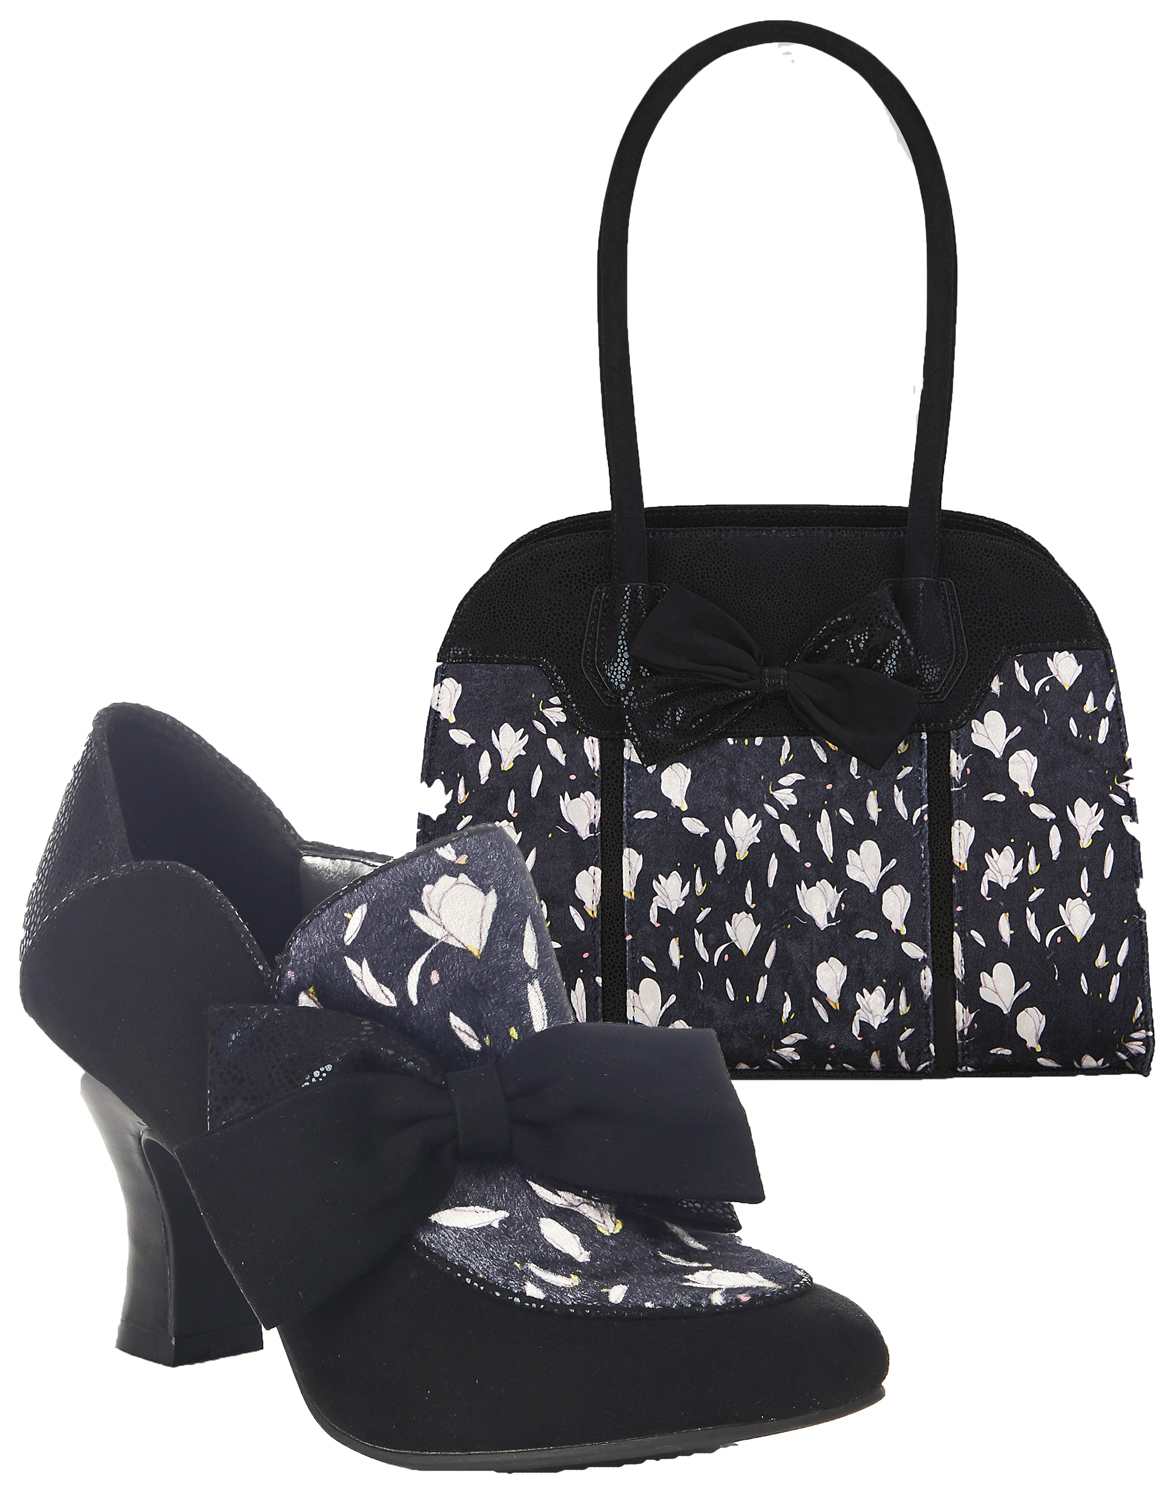 Shoes £59.99 Bag £45.00